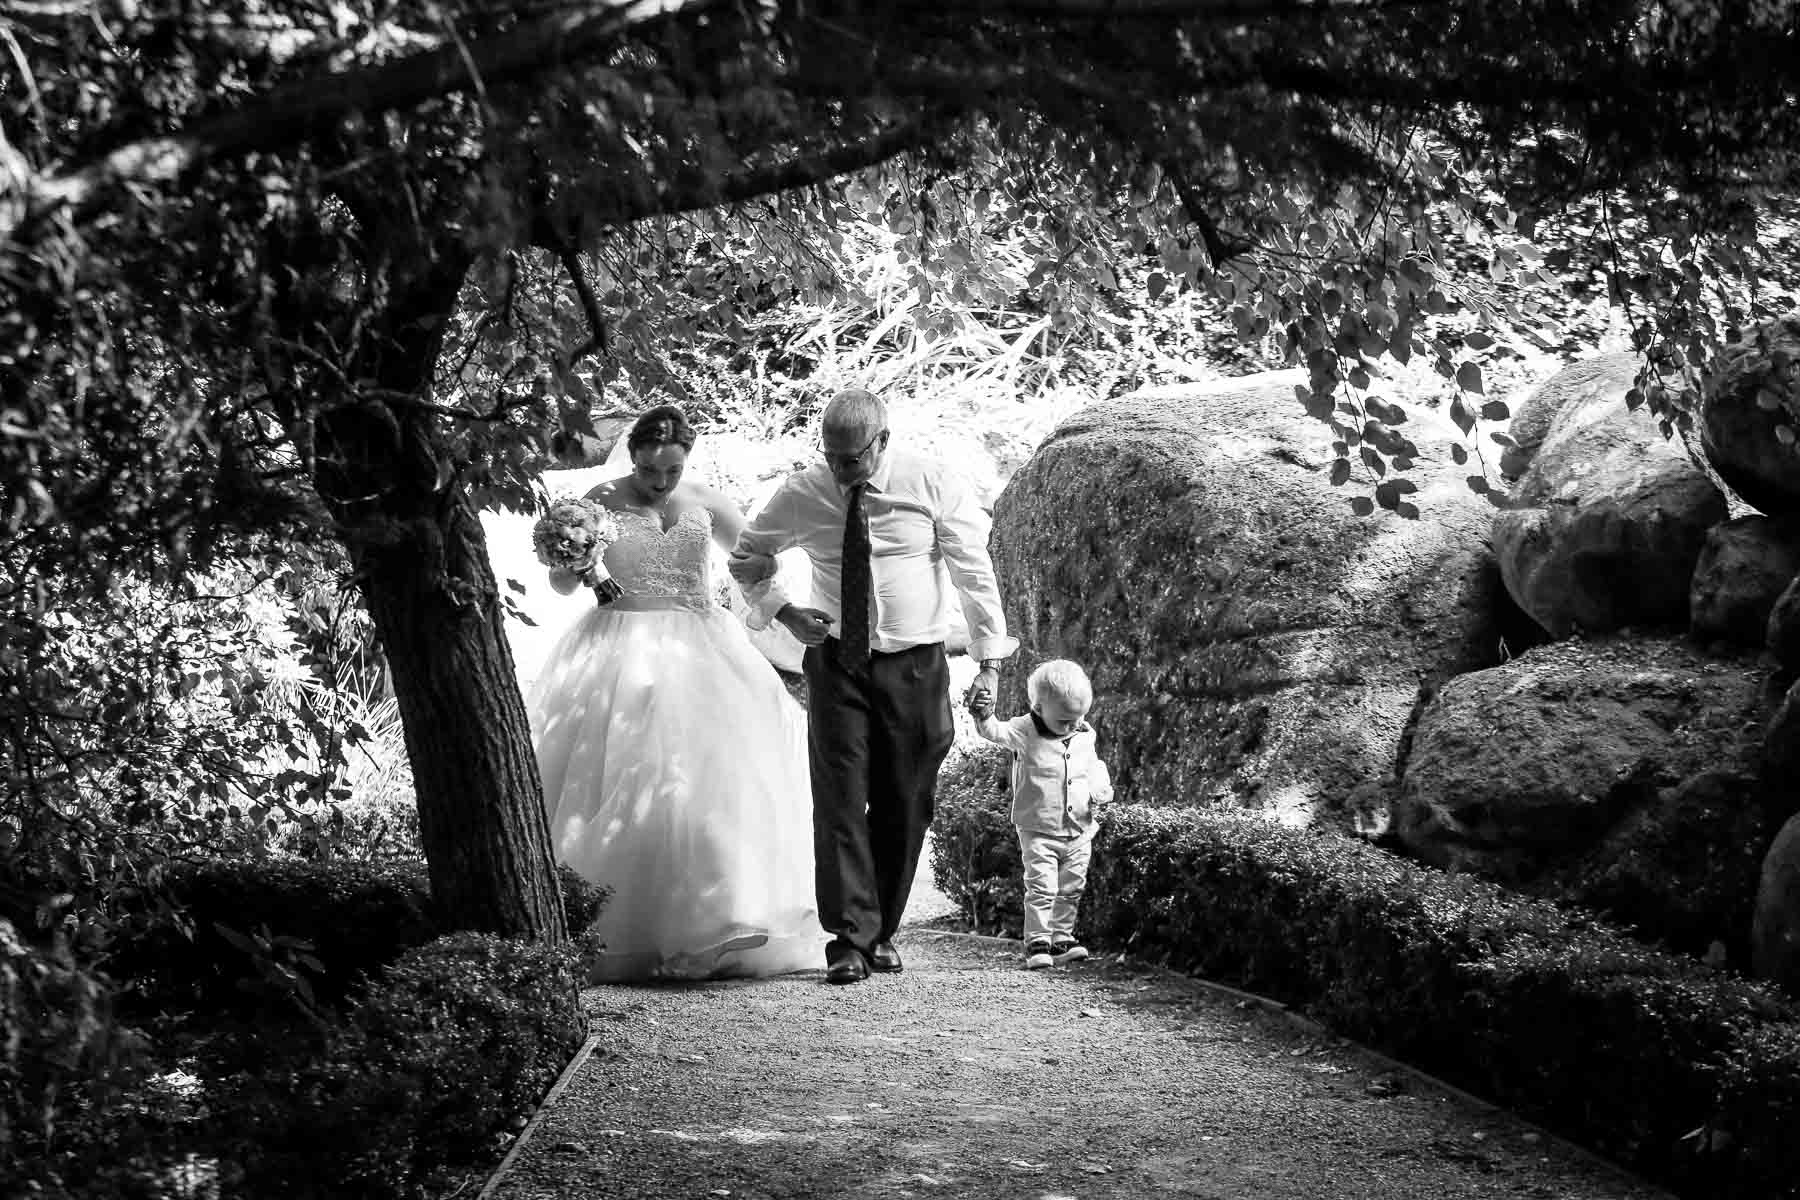 Bridal Photography Karen Brothers - Daylesford